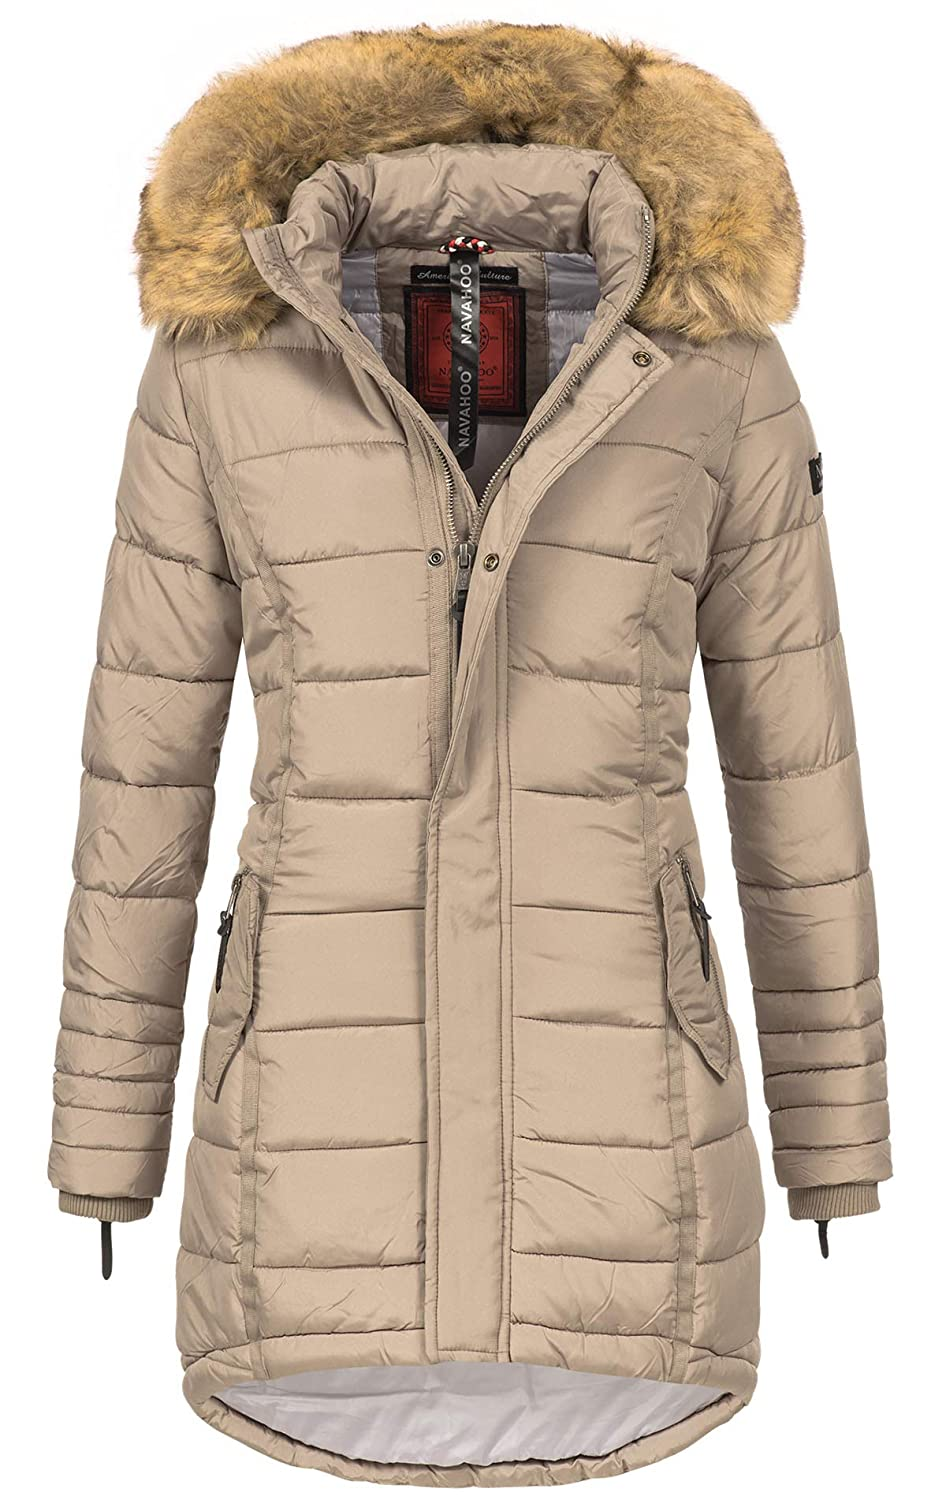 56b0b79b4381 Navahoo Papaya Damen Winter Jacke Steppjacke Mantel Parka gesteppt warm B374